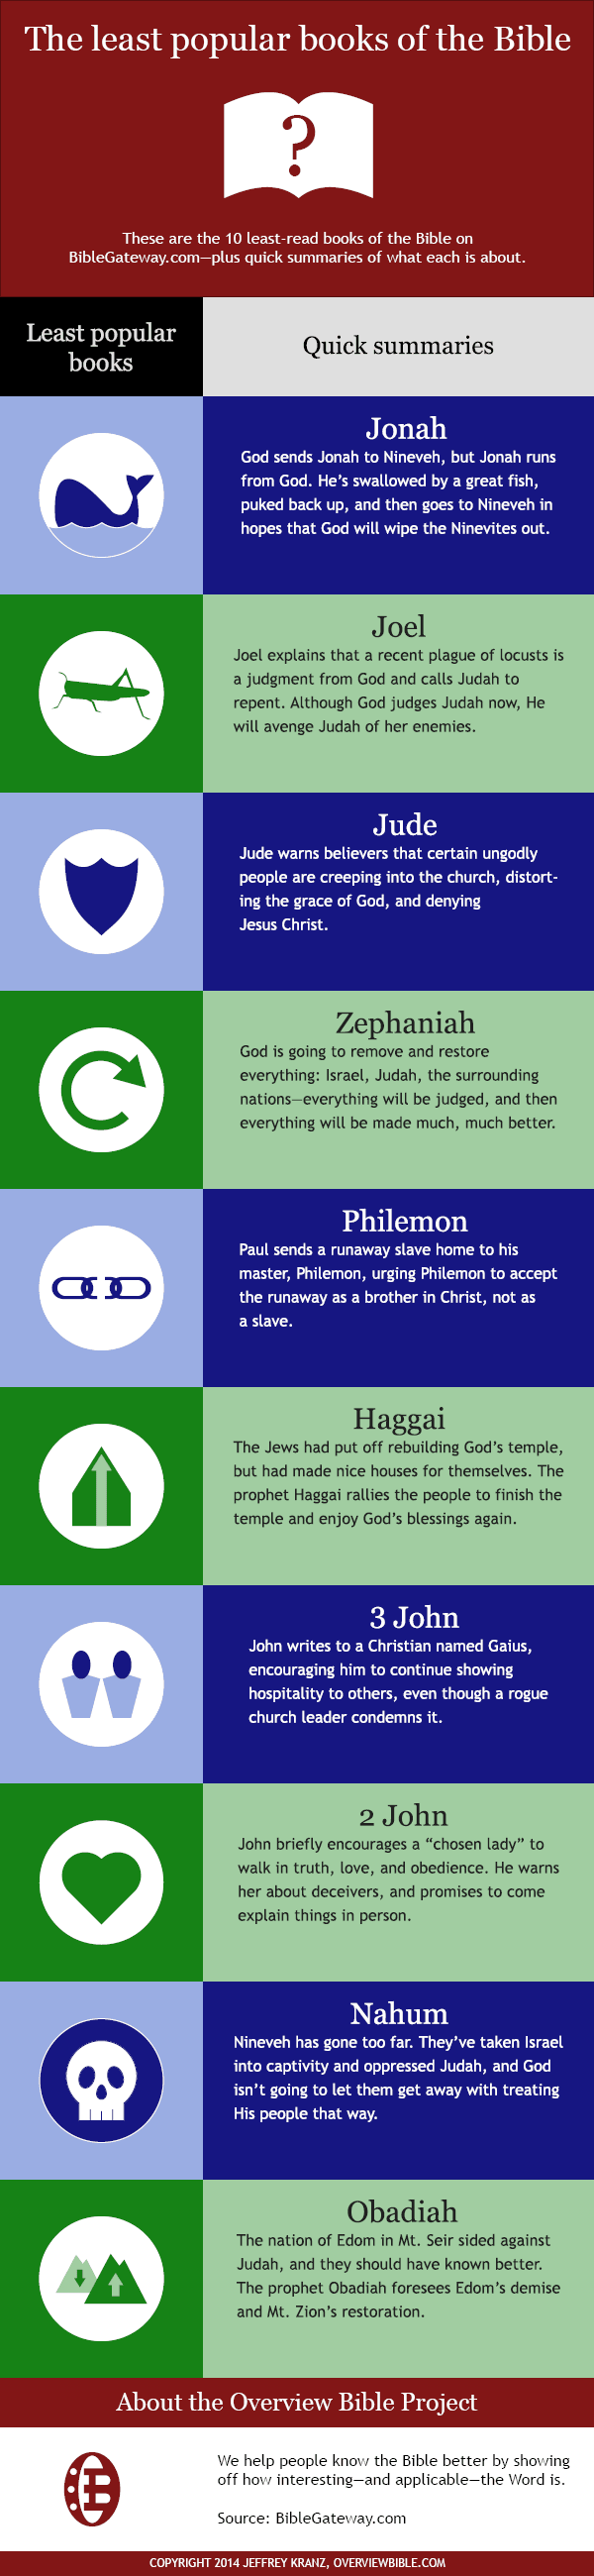 Infographic: least popular books of the Bible